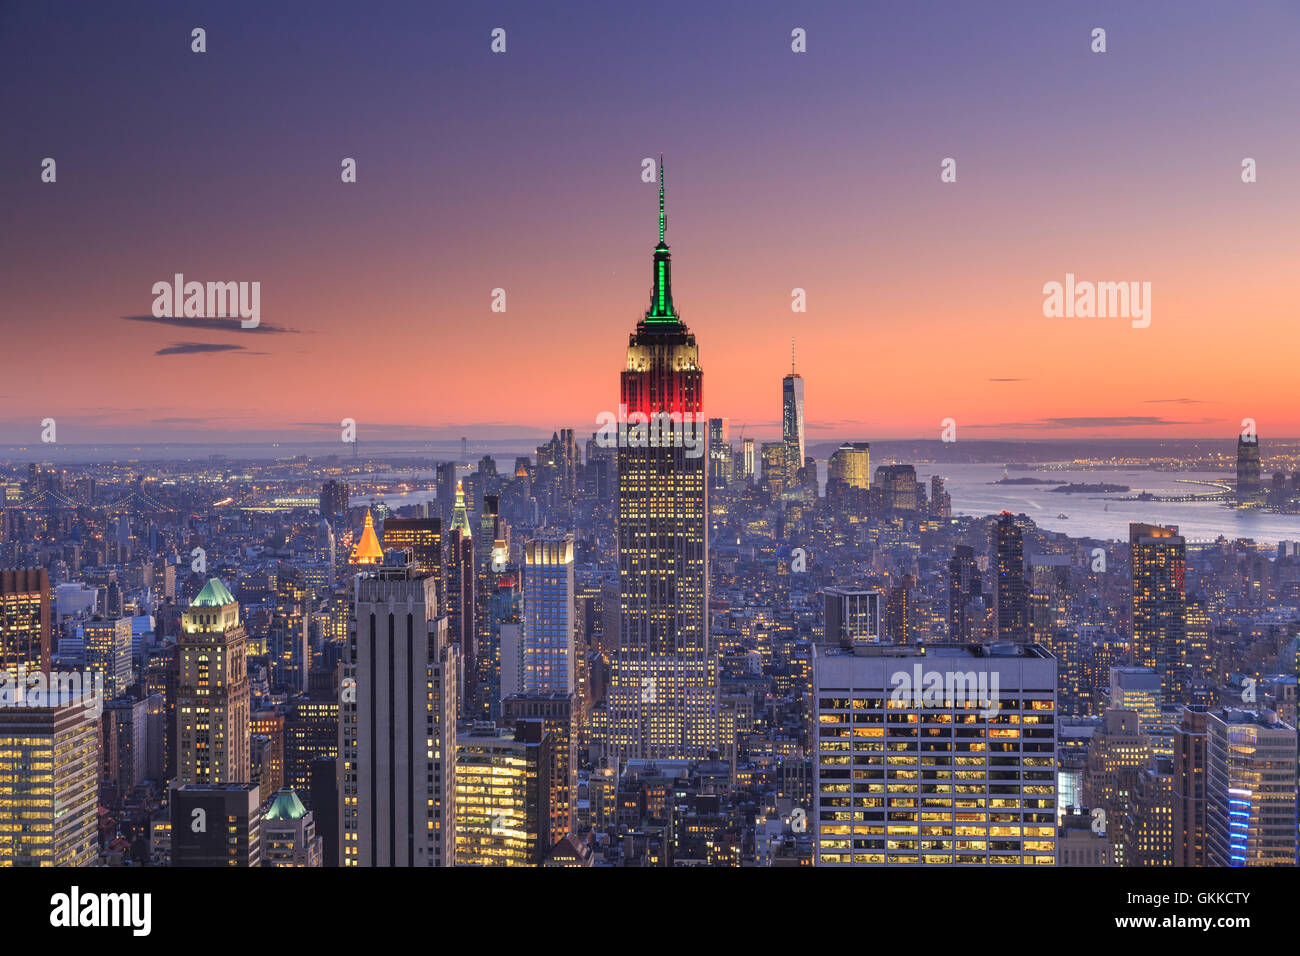 USA, New York, New York City, Empire State Building and Midtown Manhattan Skyline - Stock Image